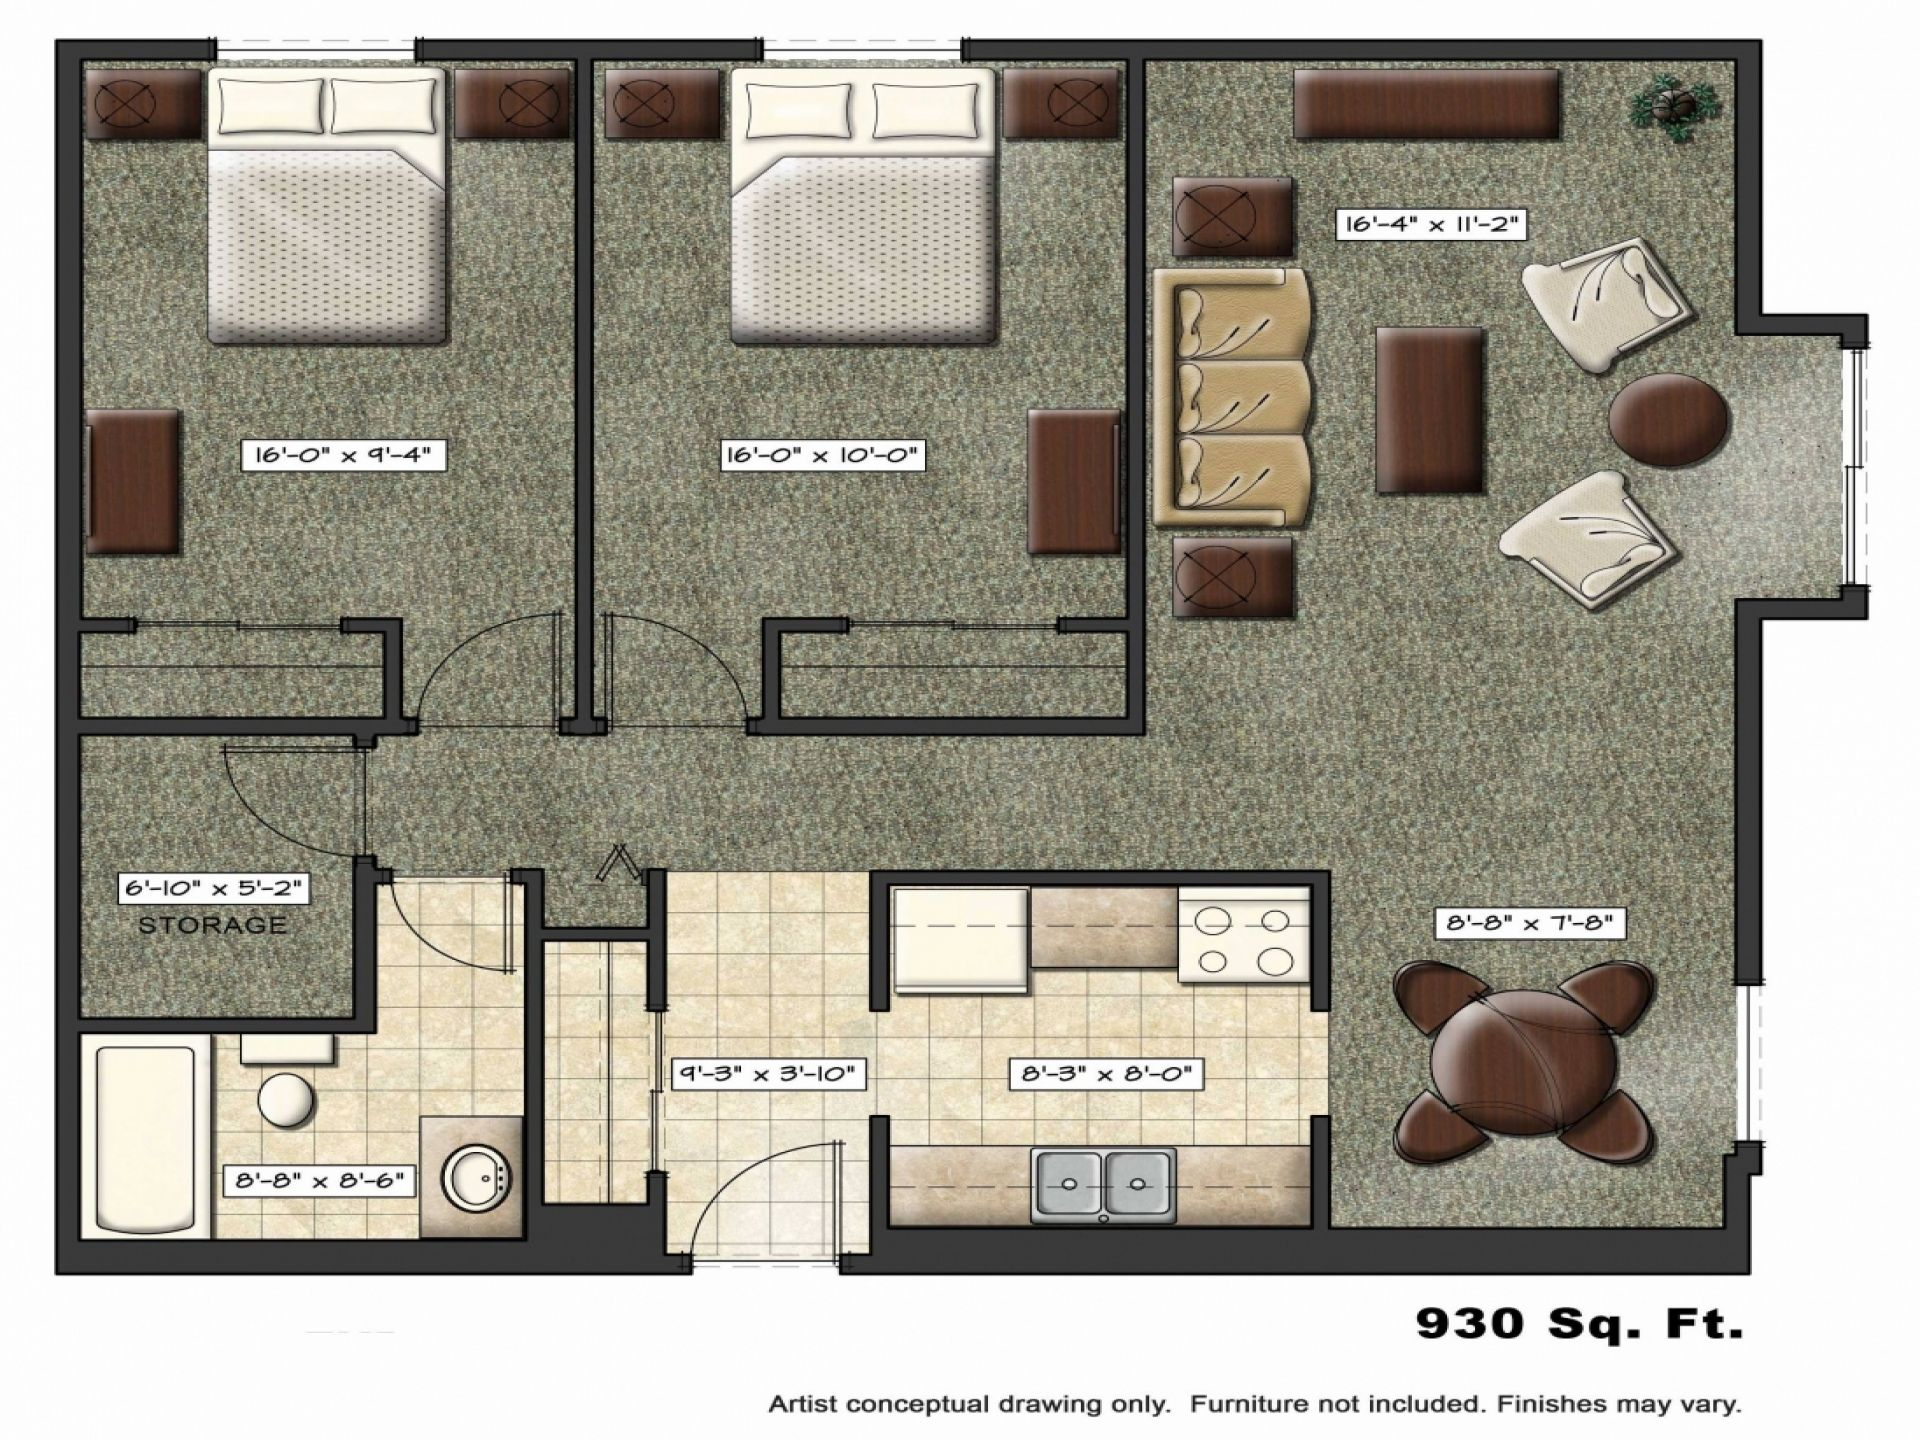 One Bedroom Efficiency Apartment Plans tropical studio apartment floor plans new york | plants